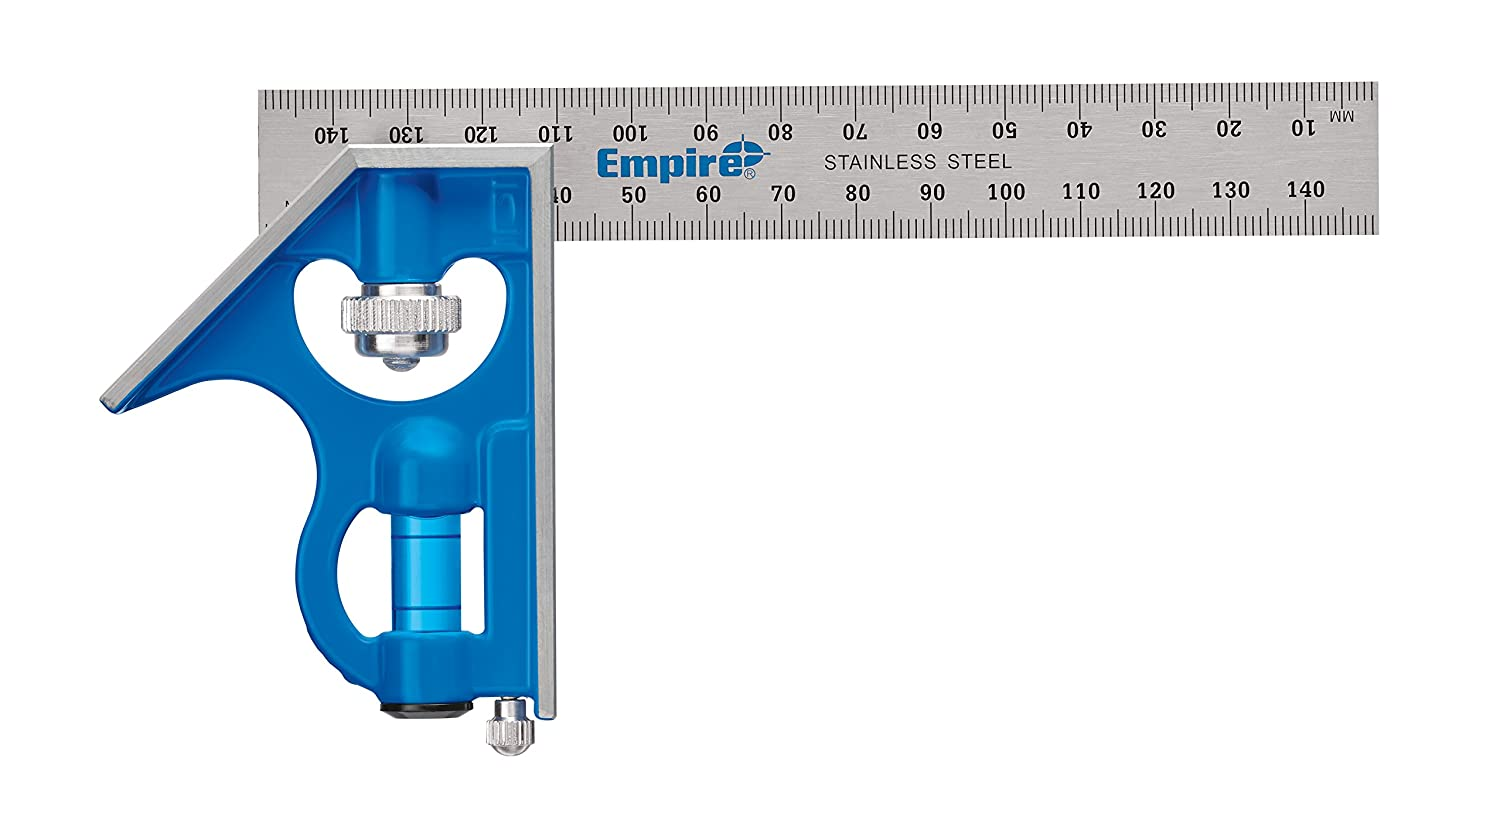 Empire Level E255M 6 Inch Pocket Combination Square With Stainless Steel Blade Metric Graduations and True Blue Vial